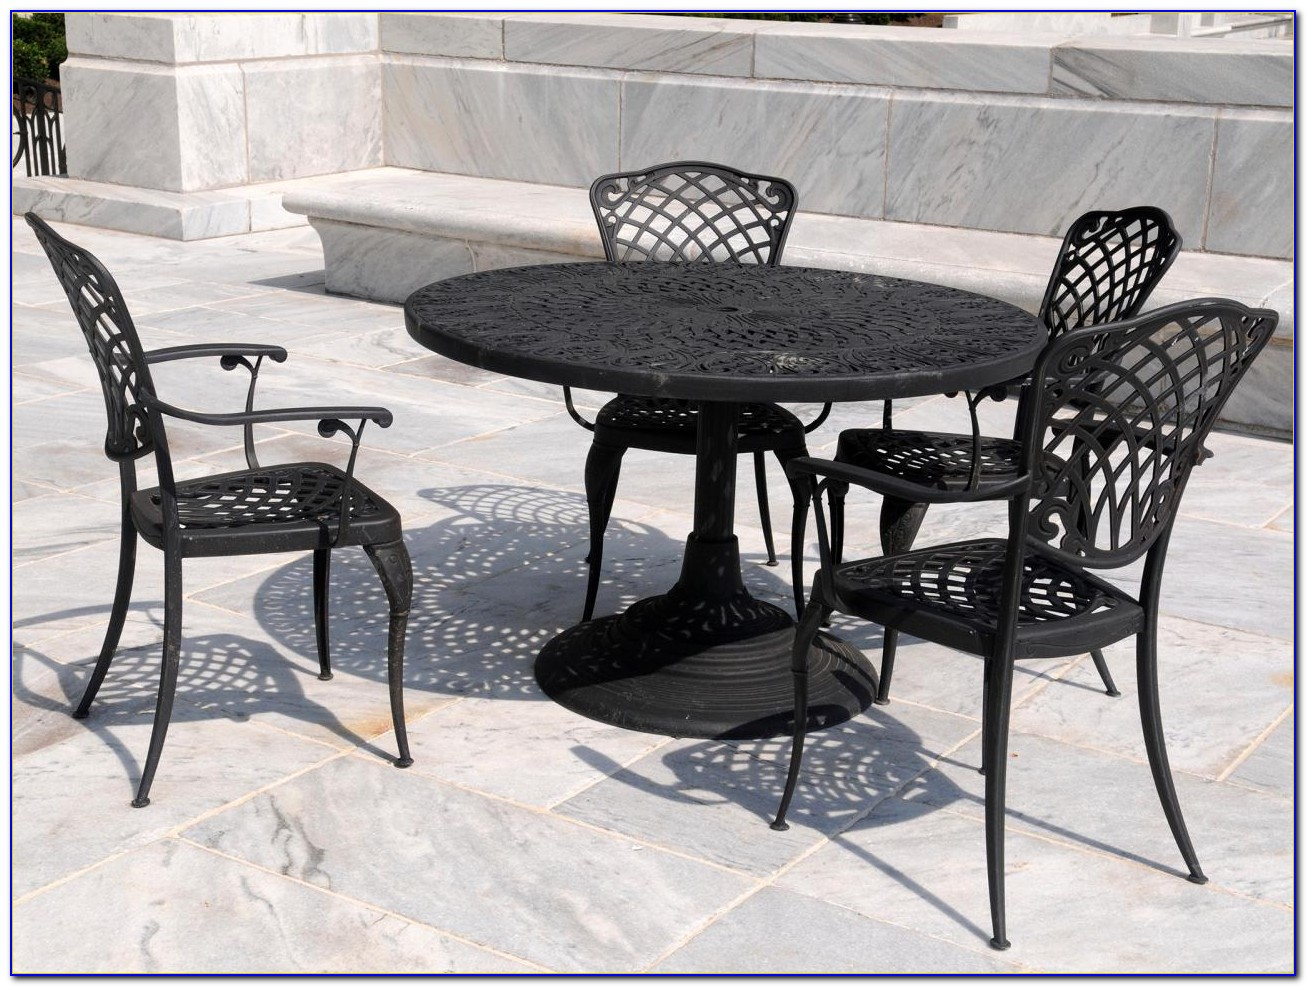 Wrought Iron Patio Table With Umbrella Hole